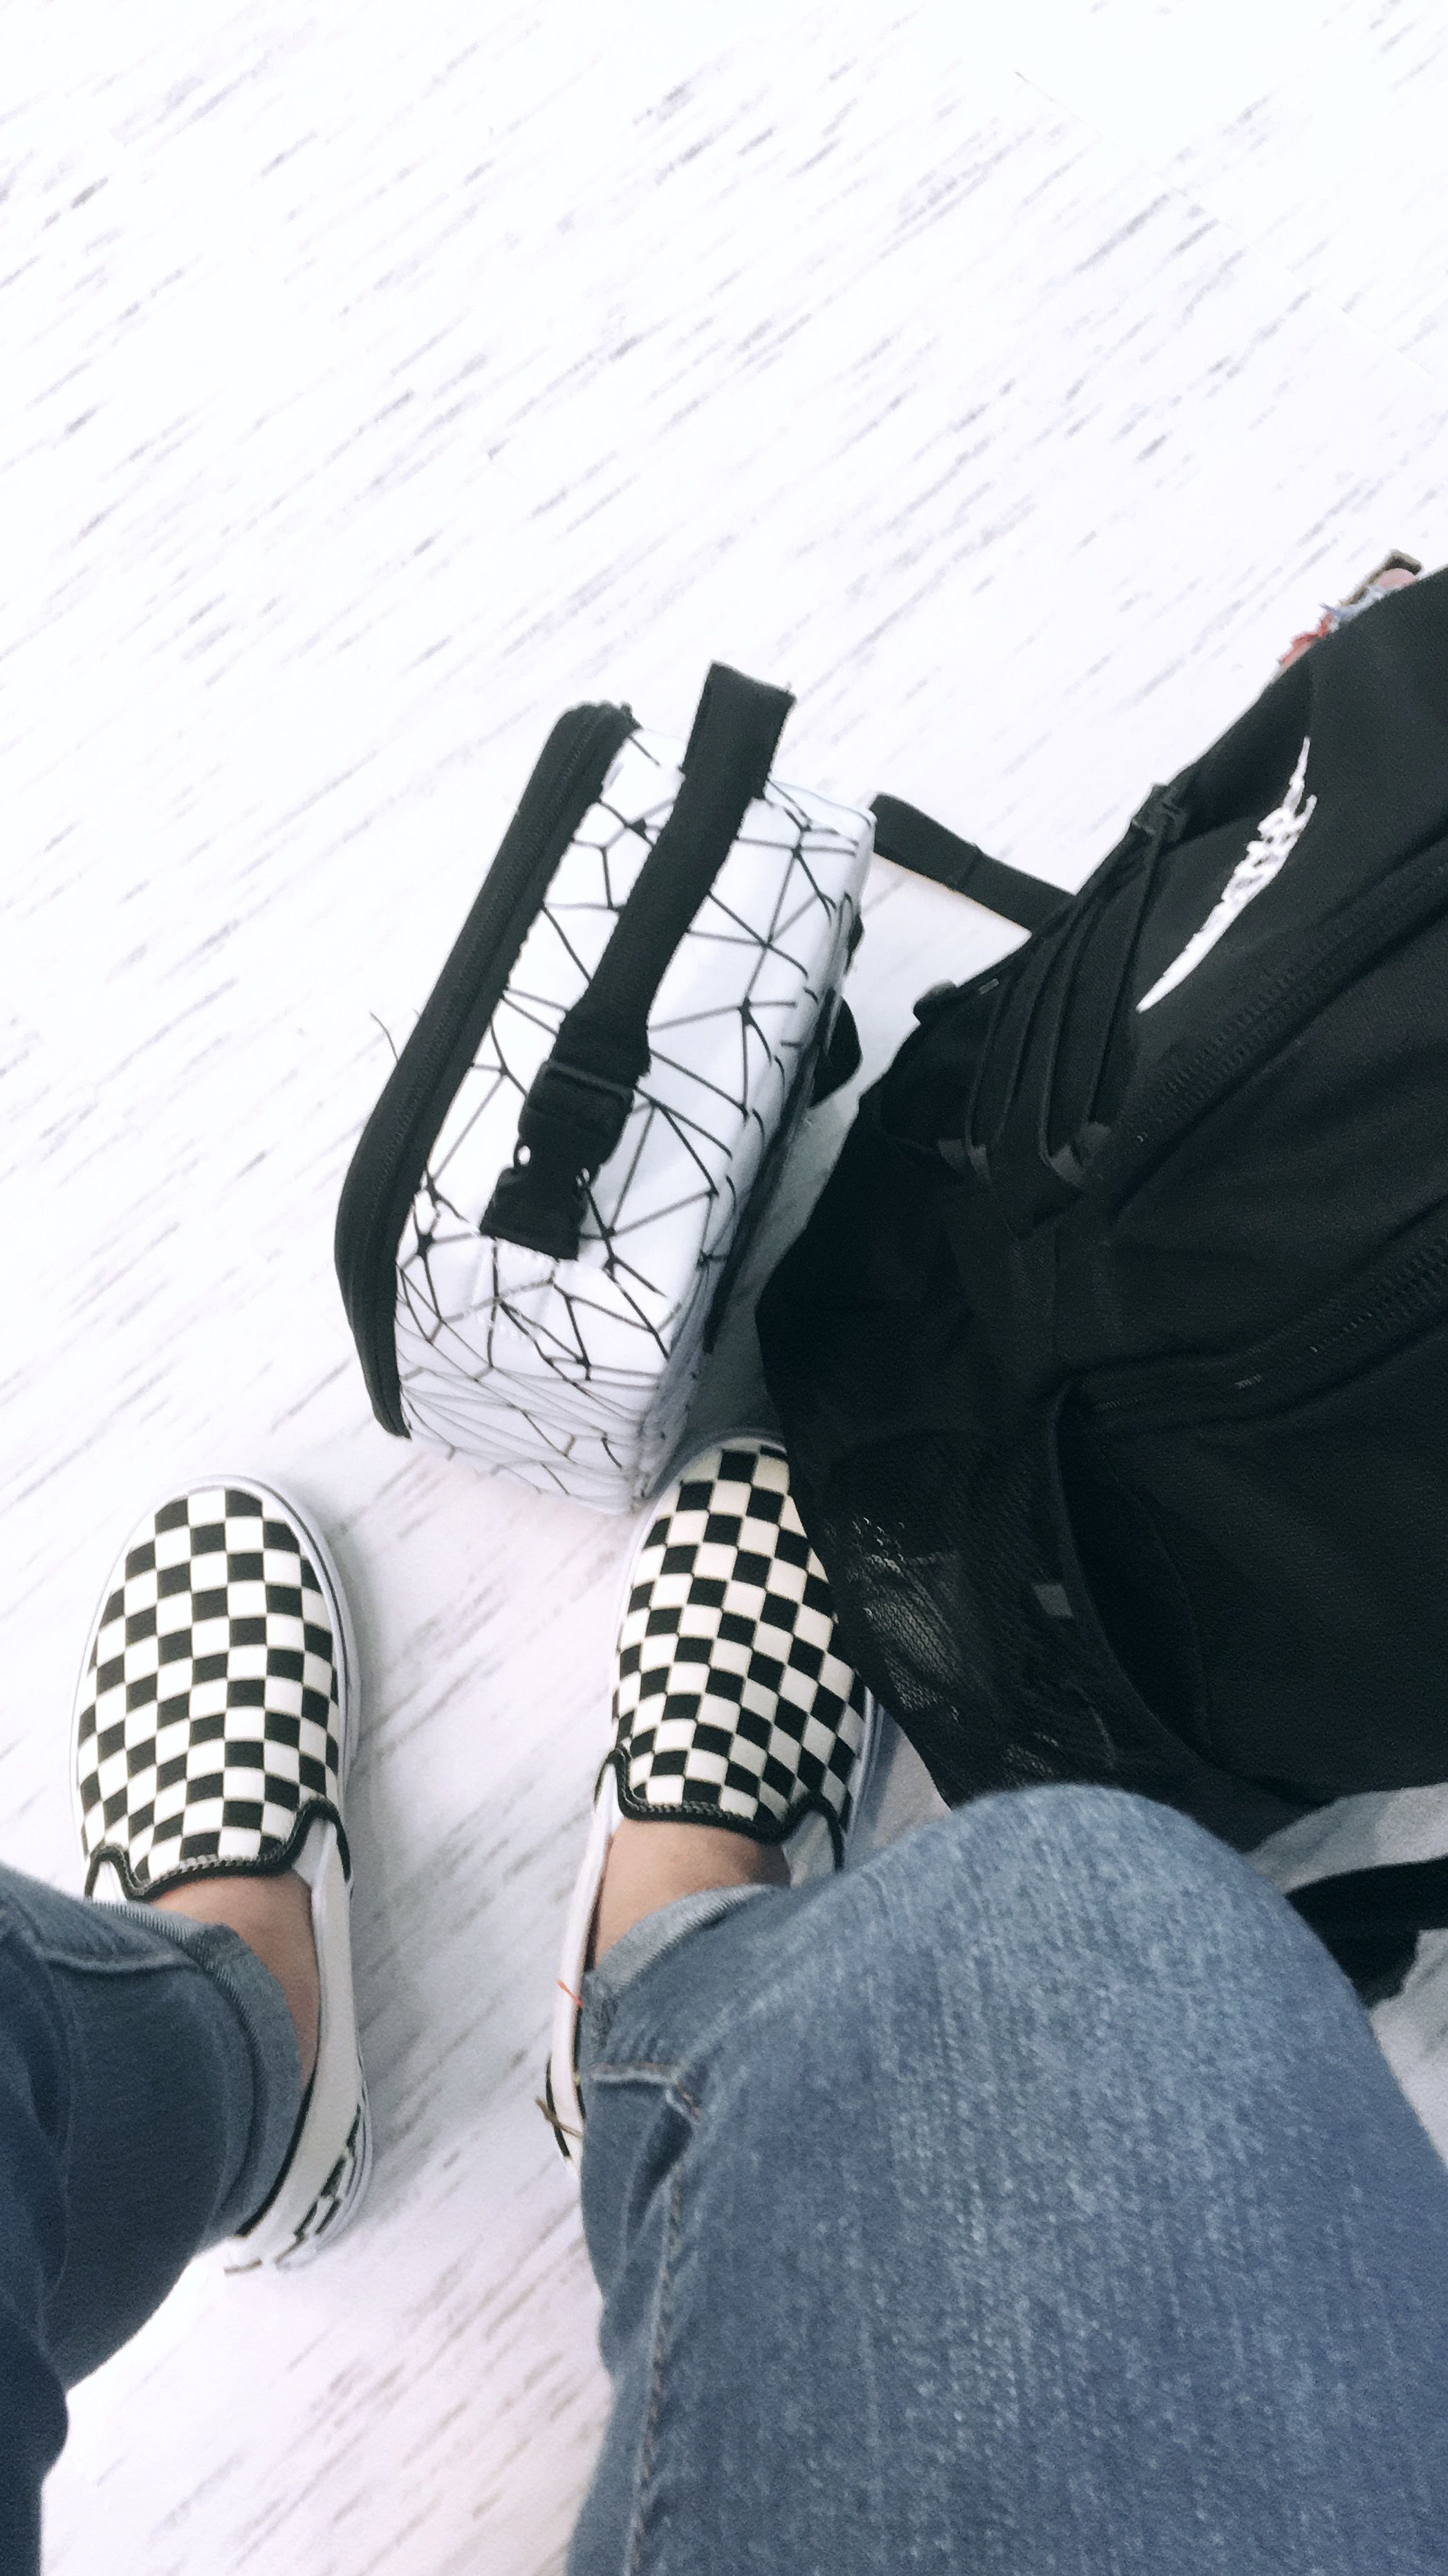 100% authentic db0d6 a8ece checkered vans  HAPPINESS  Pinterest  Fashion outfits, Vans